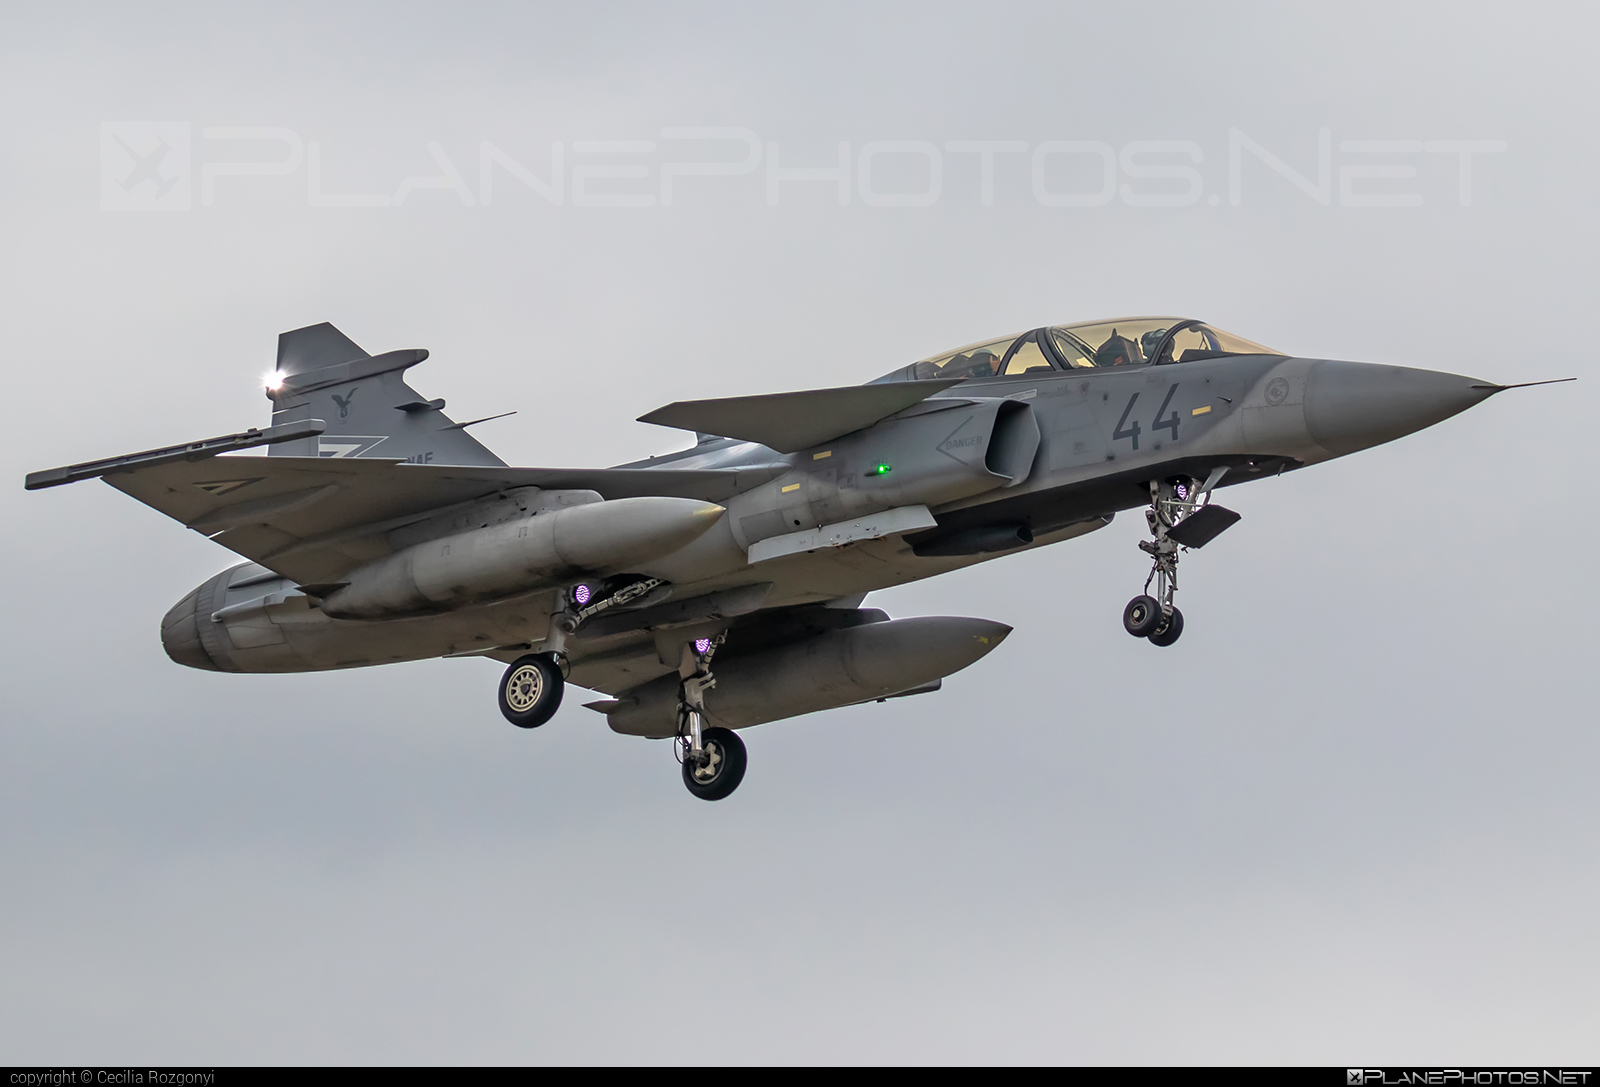 Saab JAS 39D Gripen - 44 operated by Magyar Légierő (Hungarian Air Force) #gripen #hungarianairforce #jas39 #jas39d #jas39gripen #magyarlegiero #saab